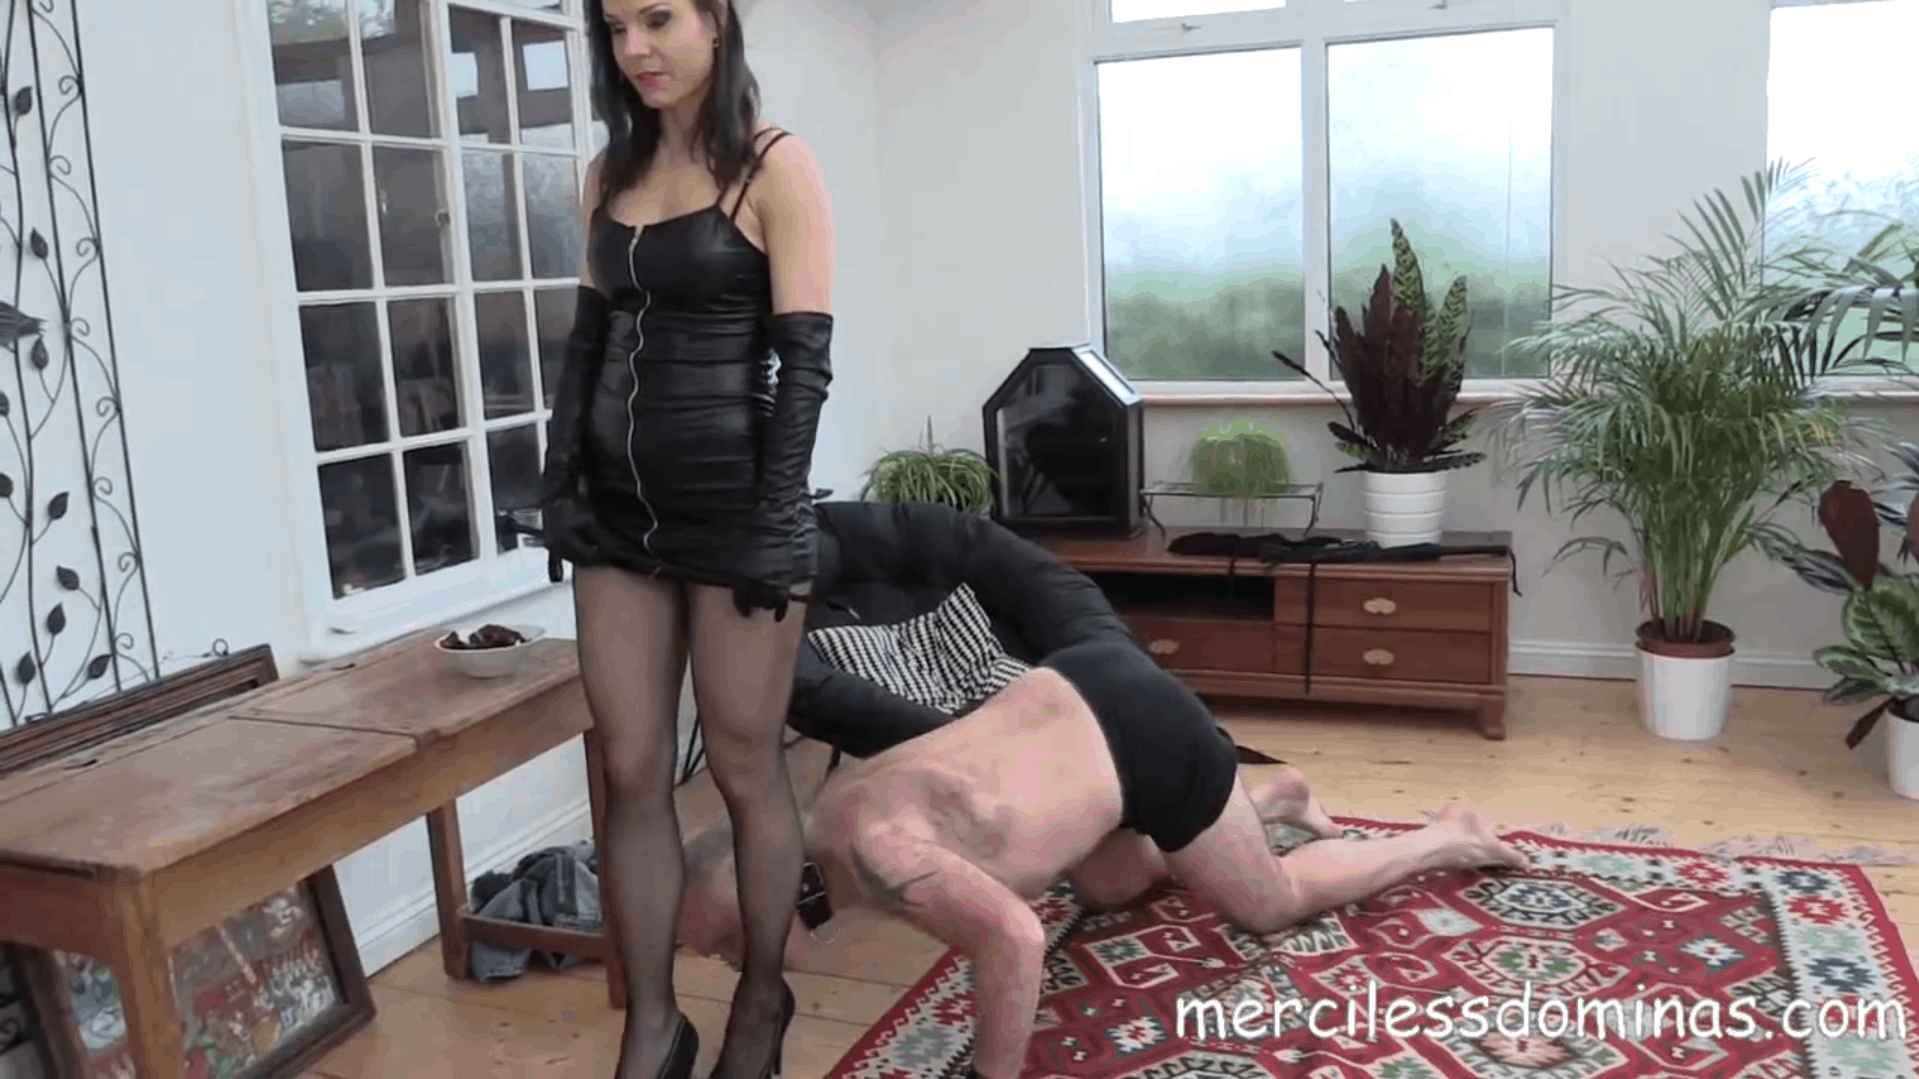 Another Slave For Lady G